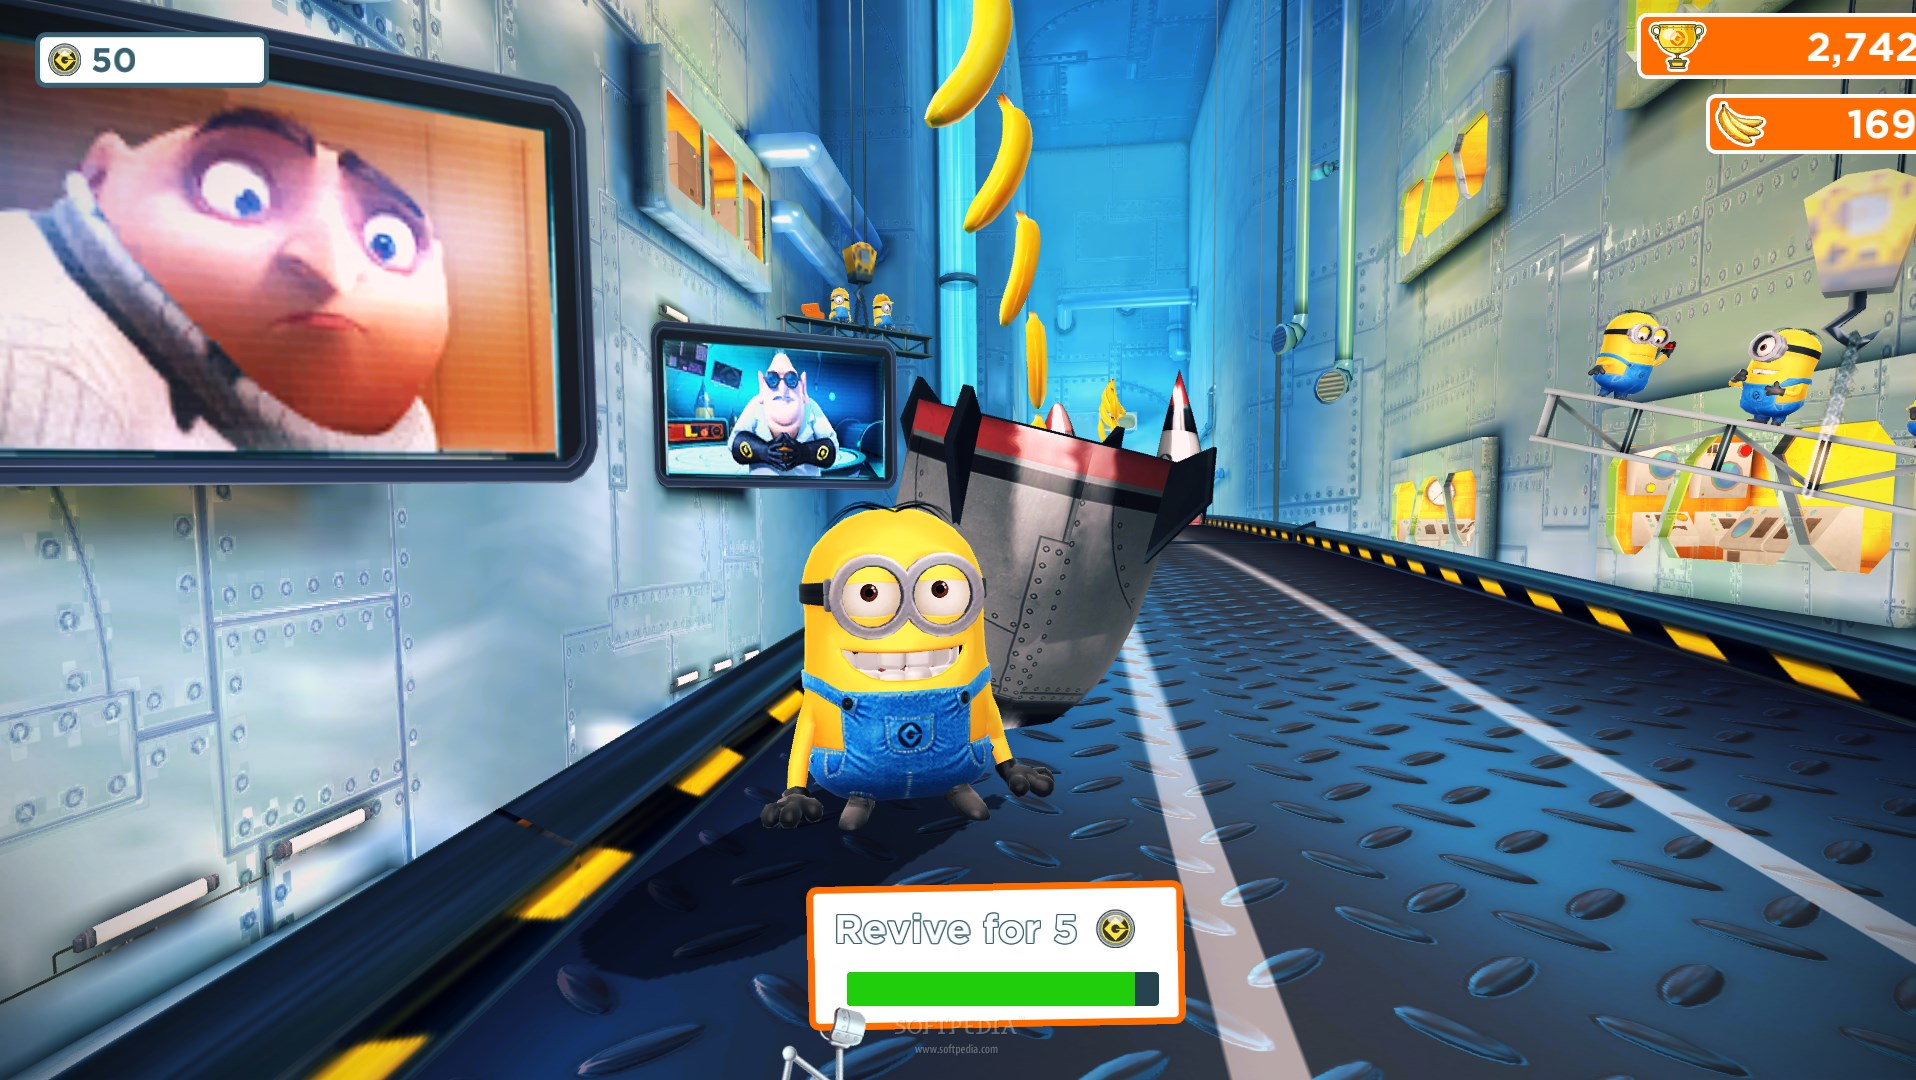 Despicable Me Games - Play Despicable Me Games Online for Free